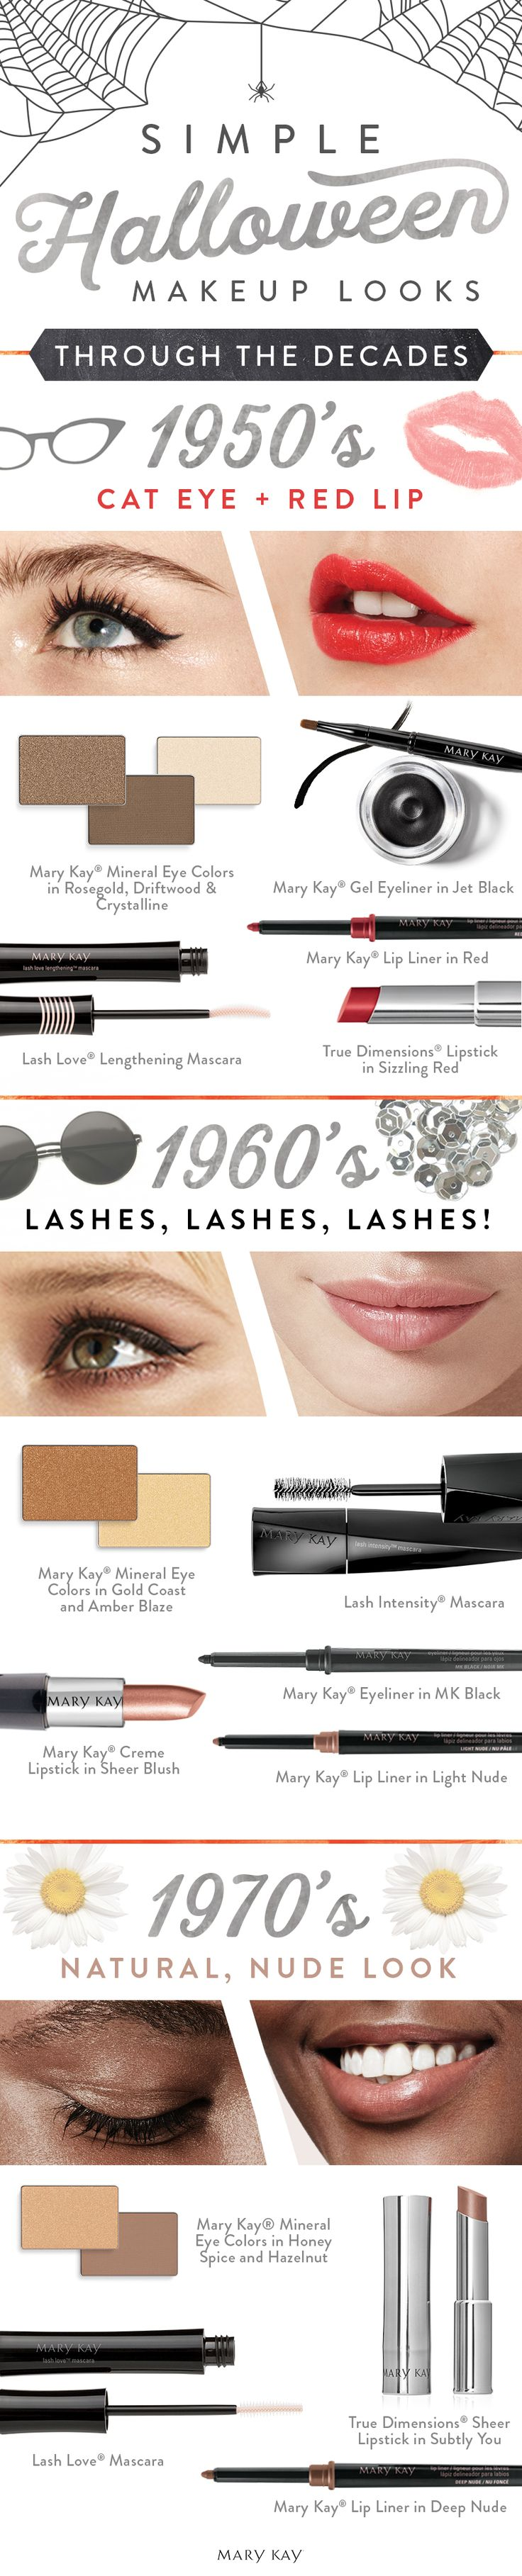 Work-appropriate Halloween makeup looks that take you through the decades! For the 1950s, try a red lip and cat eye. For 1960s, it's all about the lashes. For 1970s, go au natural flower child style with a nude palette! | Mary Kay